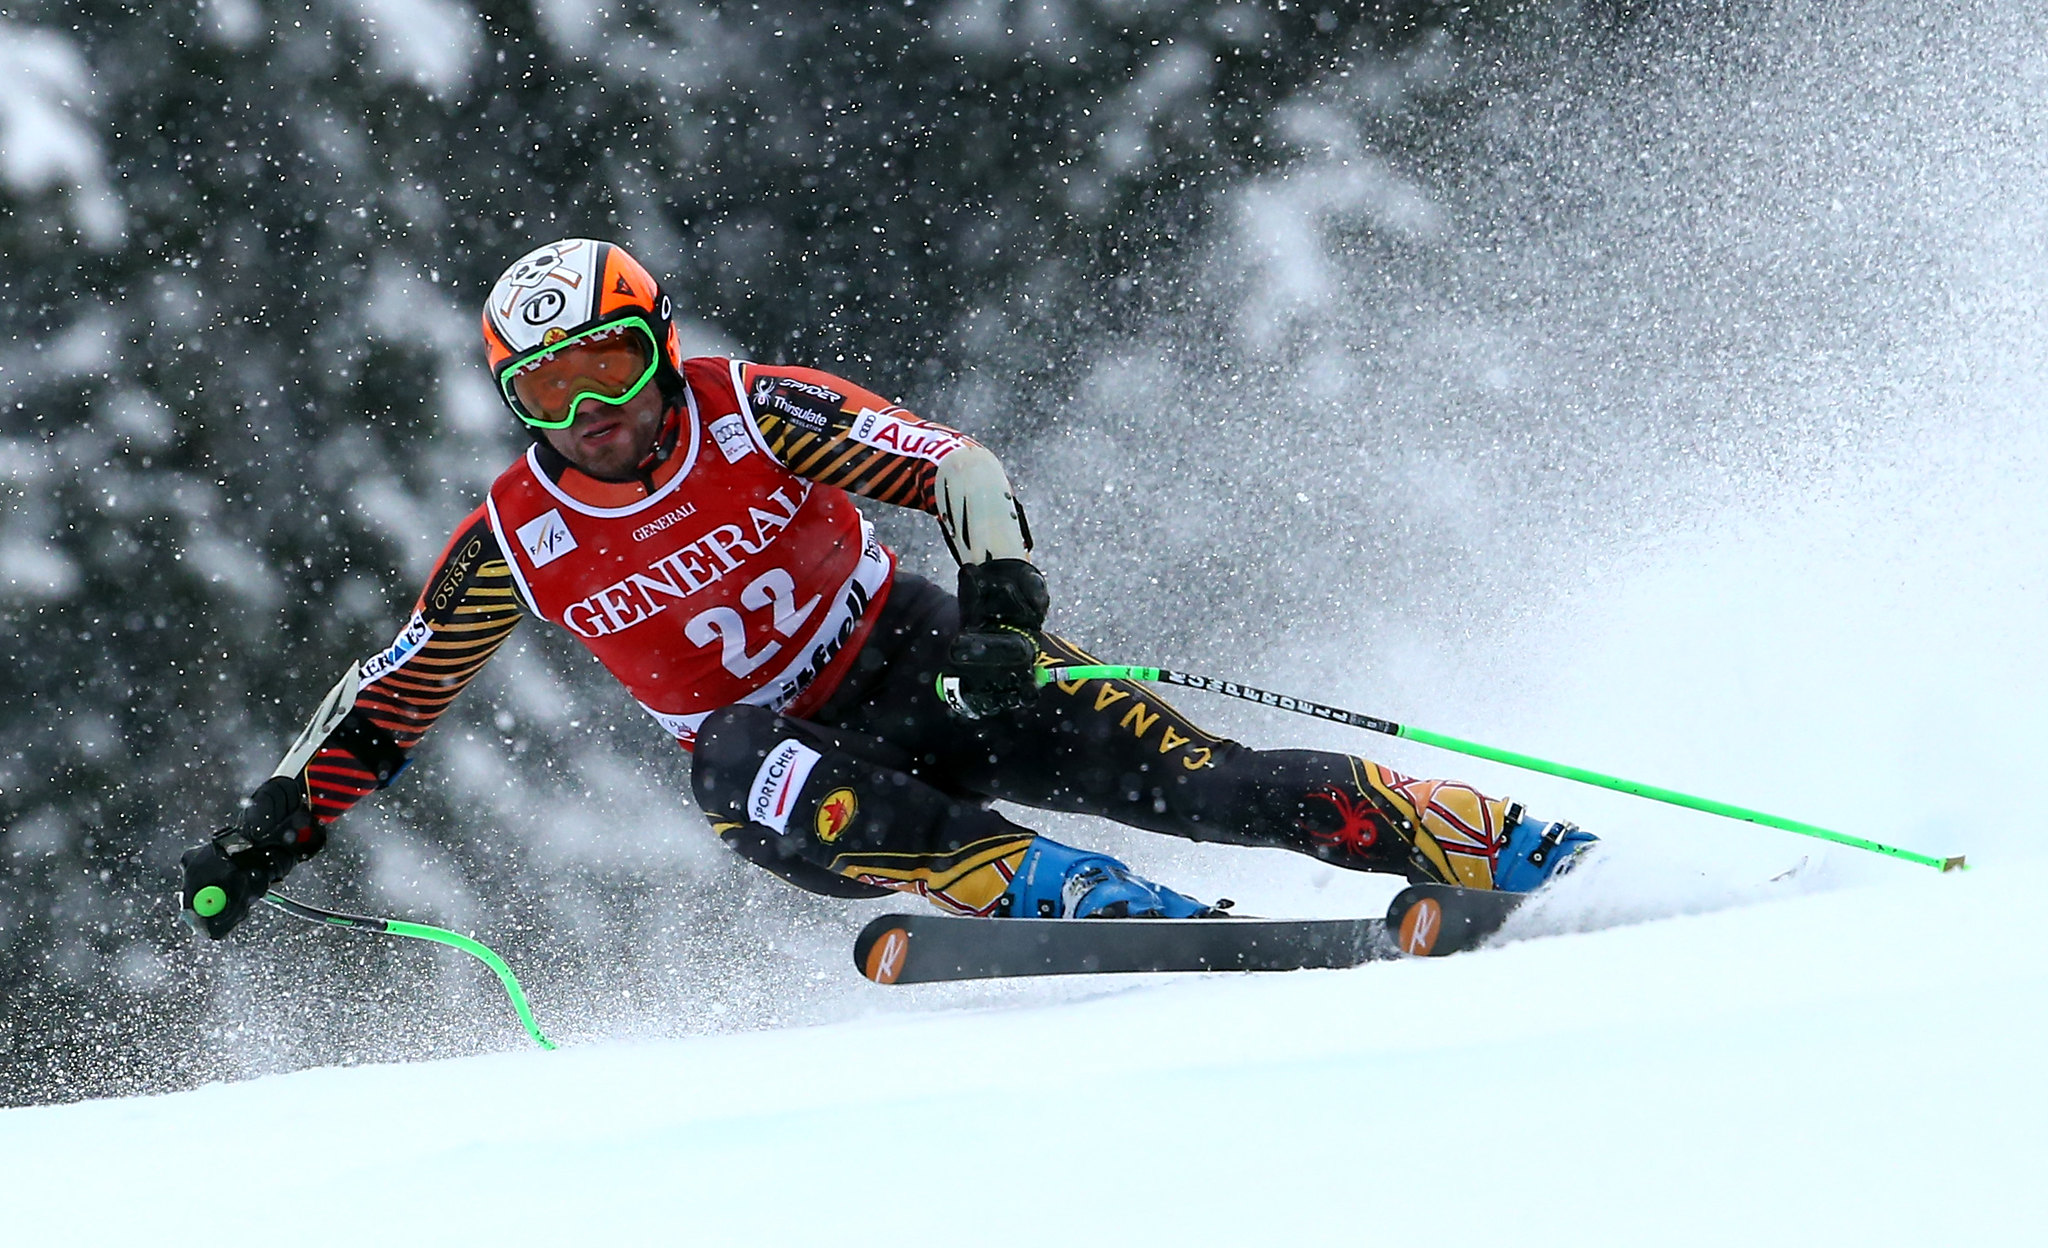 Jan Hudec competes in the Super-G in Kvitfjell, NOR